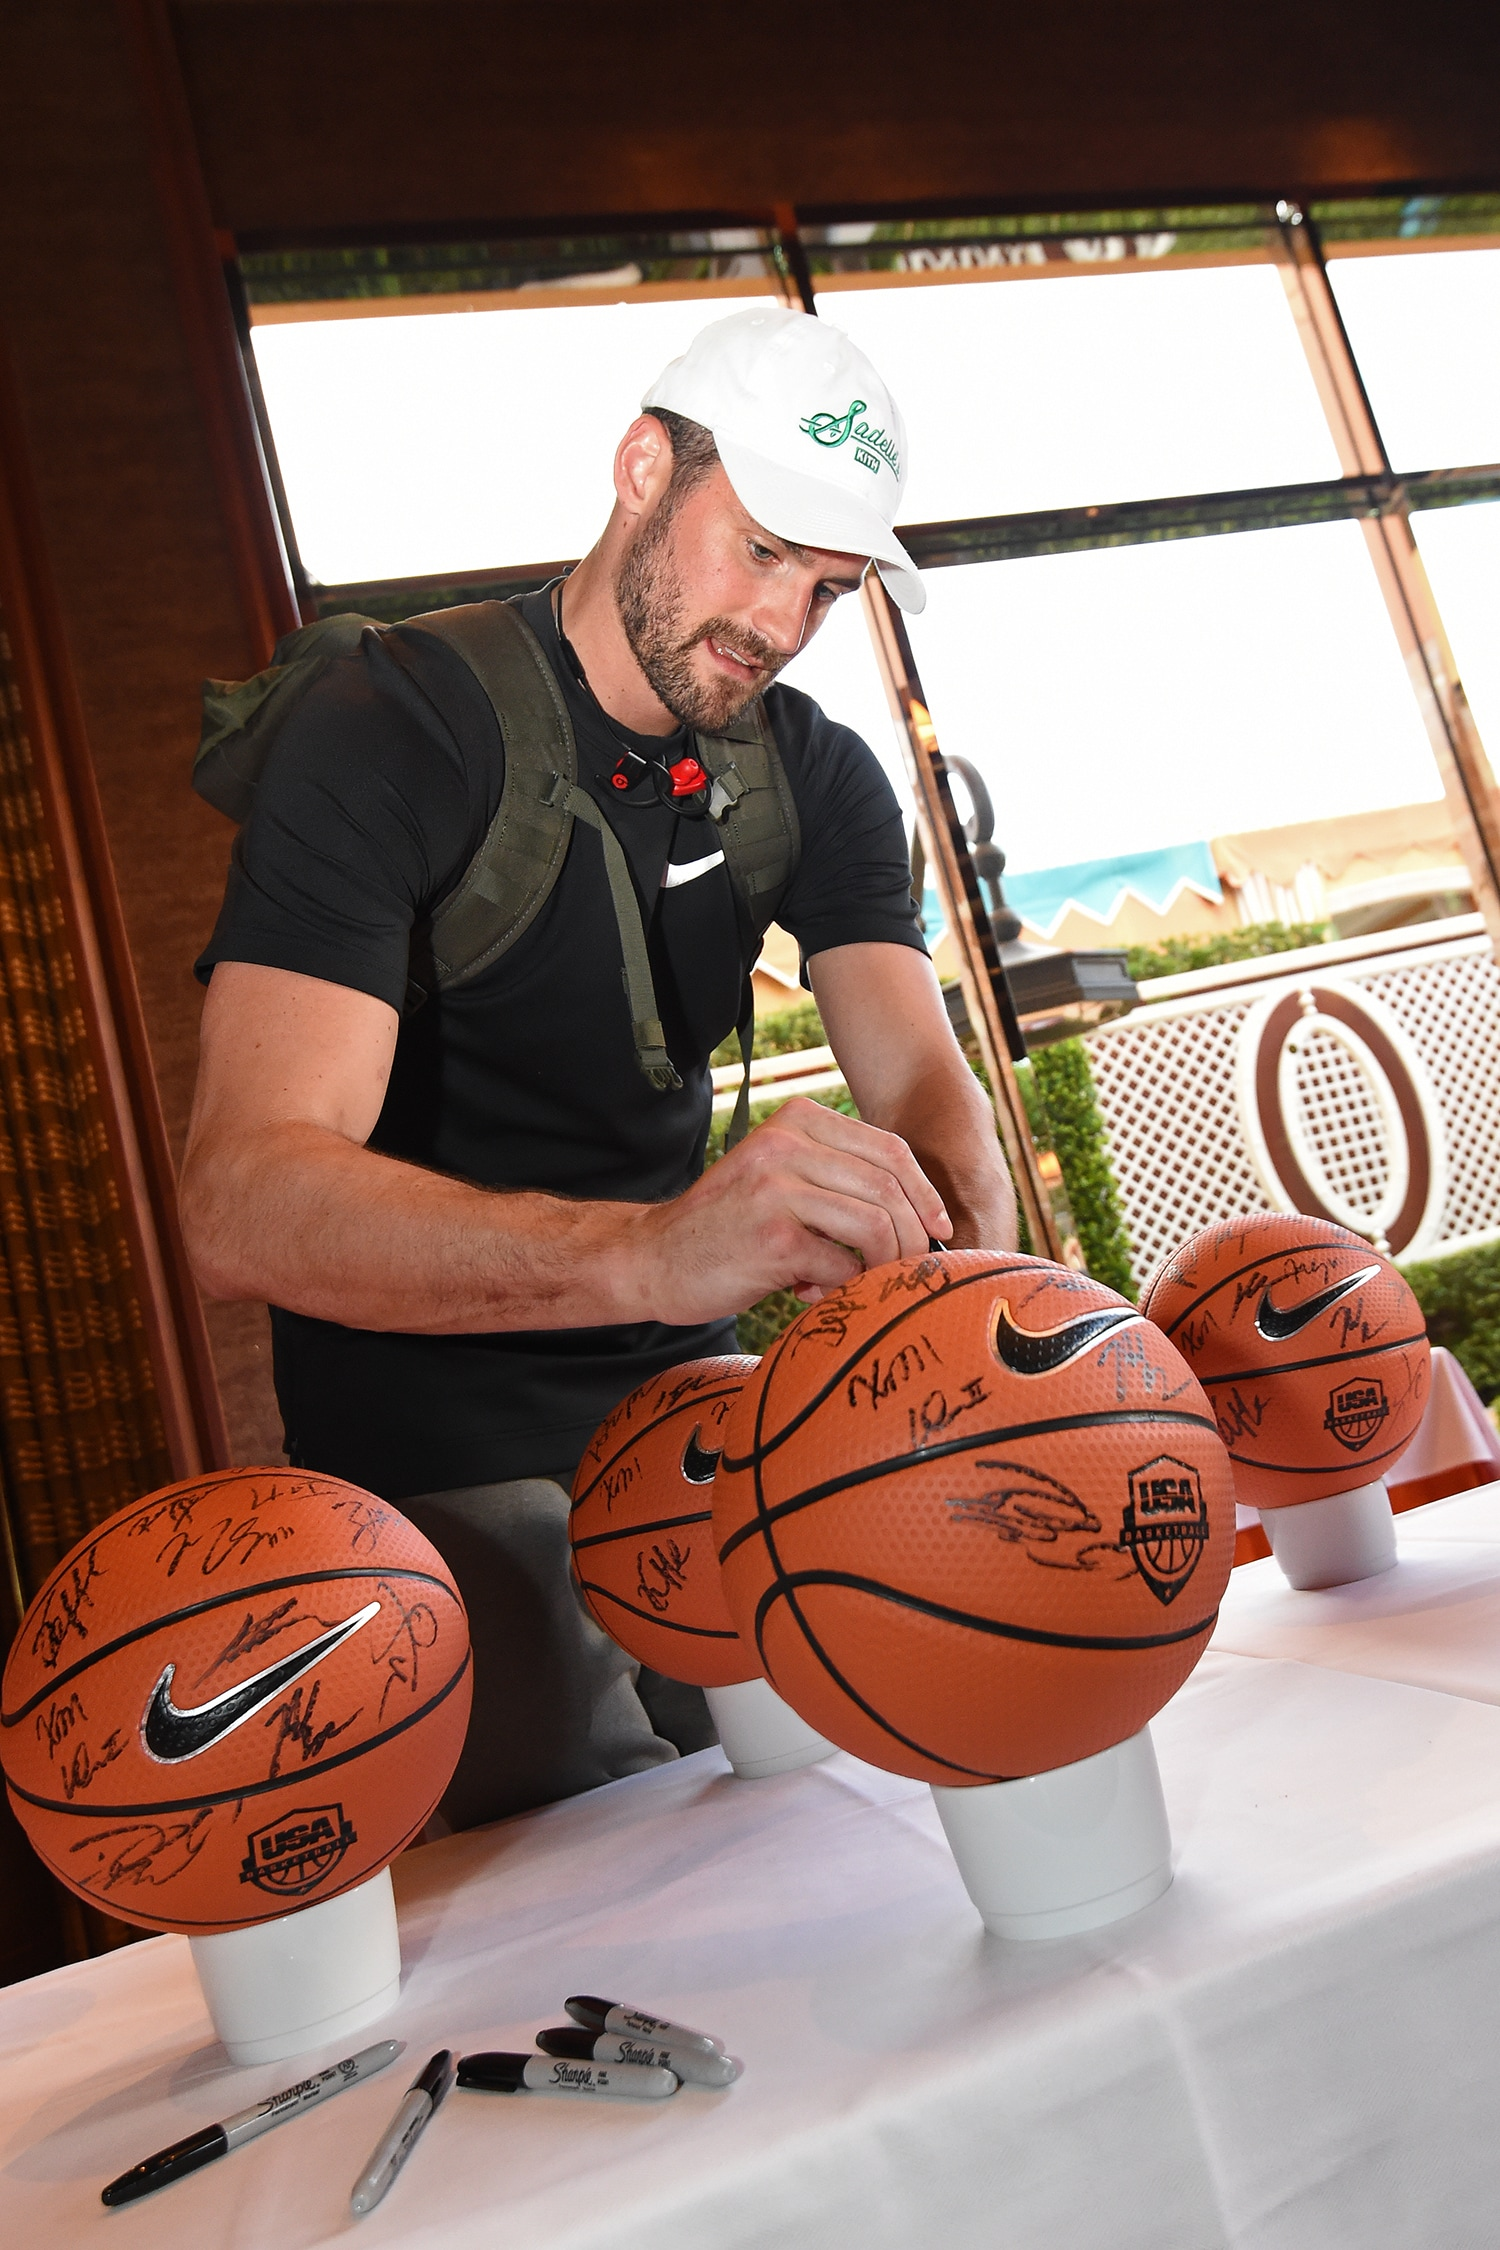 LAS VEGAS, NV - JULY 25: Kevin Love signs autographs during USAB Minicamp in Las Vegas, Nevada at the Wynn Las Vegas on July 25, 2018.(Adam Pantozzi/NBAE via Getty Images)